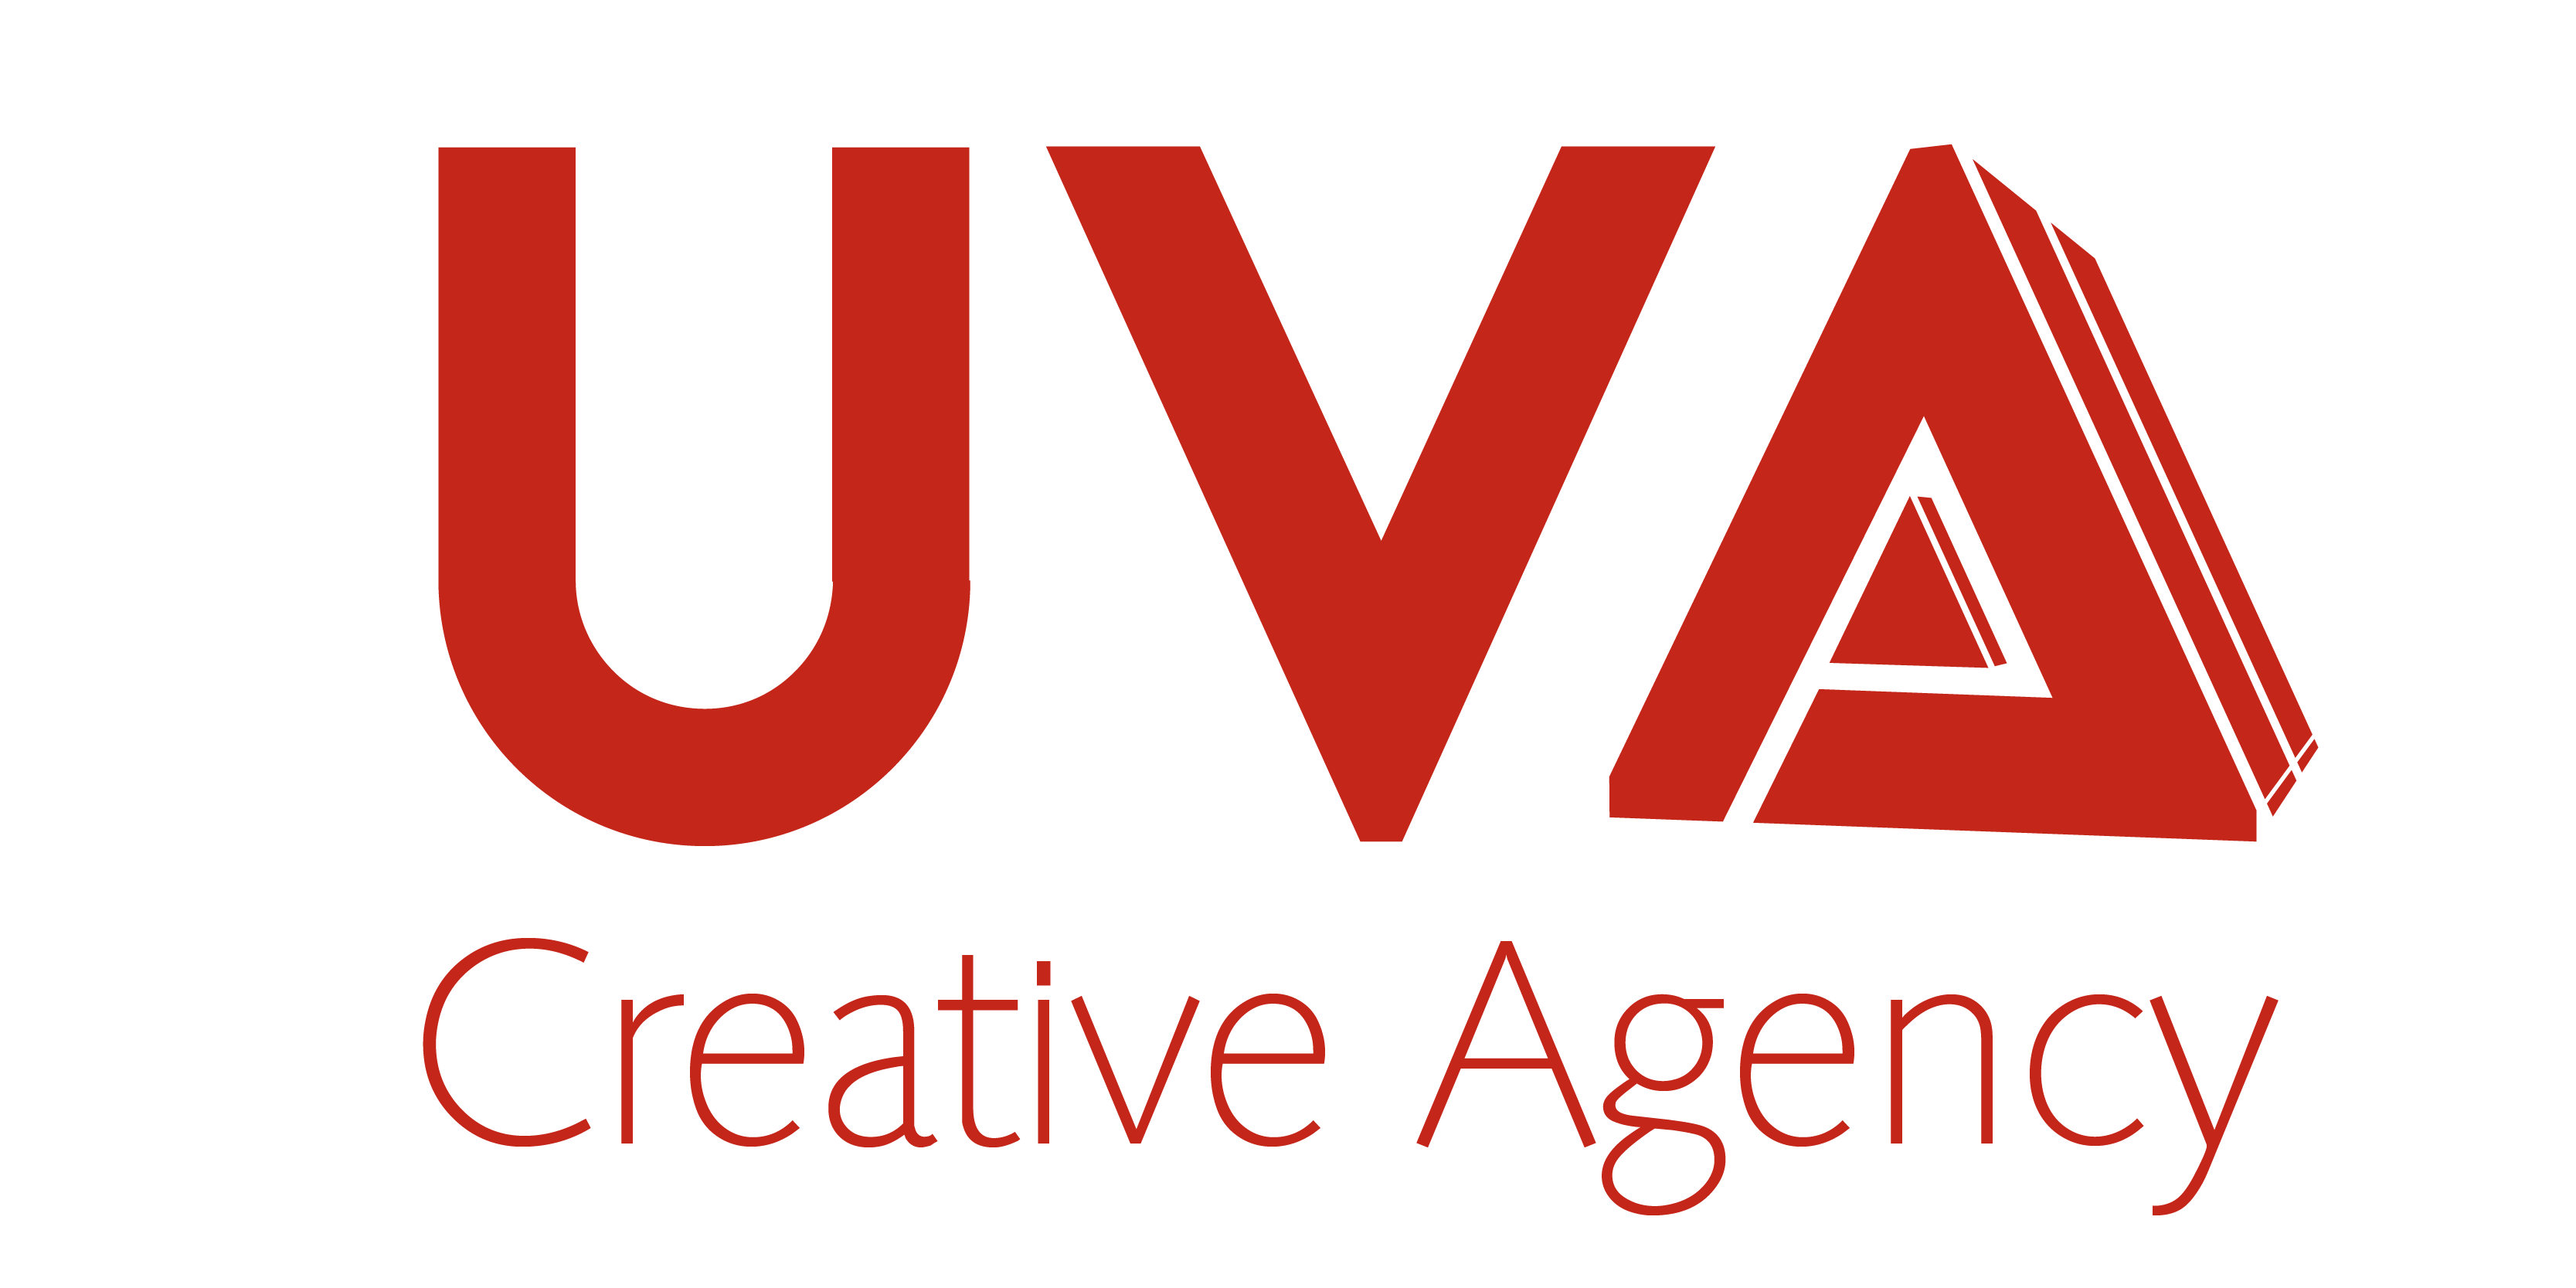 UVA Creative Agency